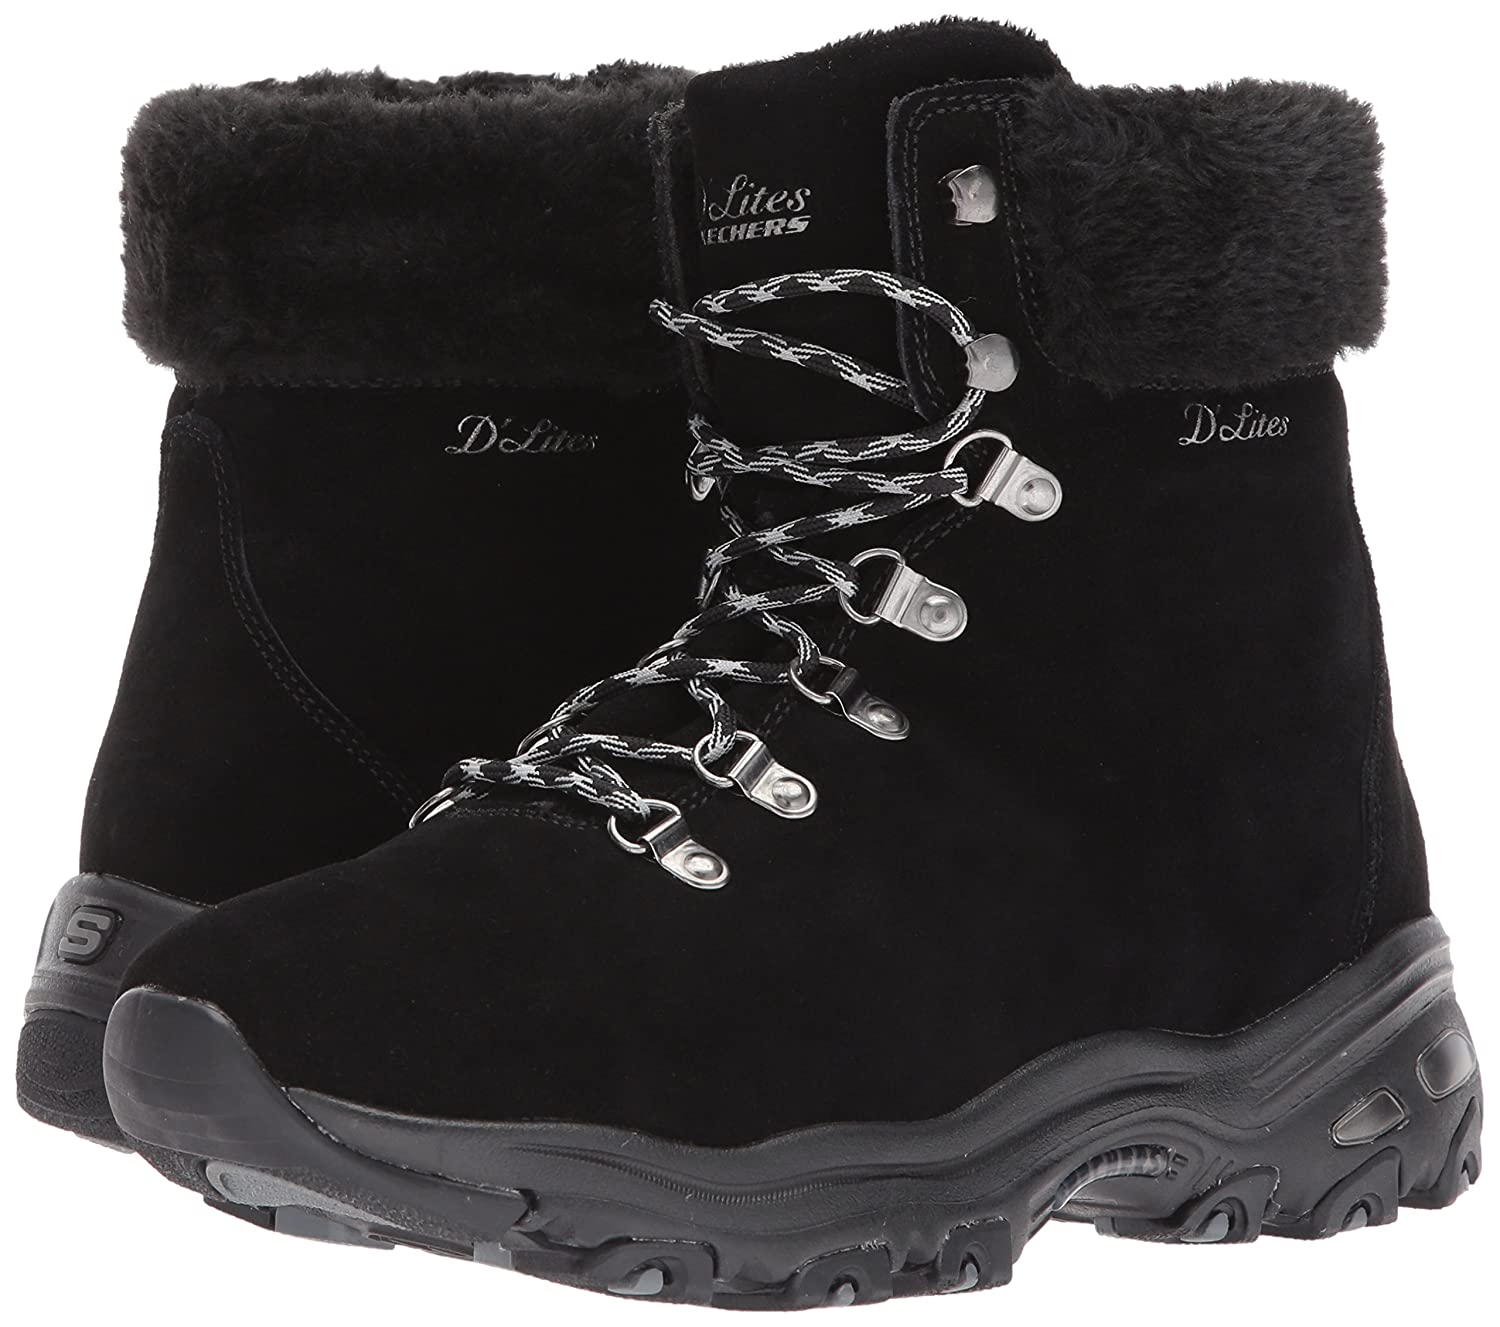 Skechers Women's D'Lites Alps W Snow Shoe